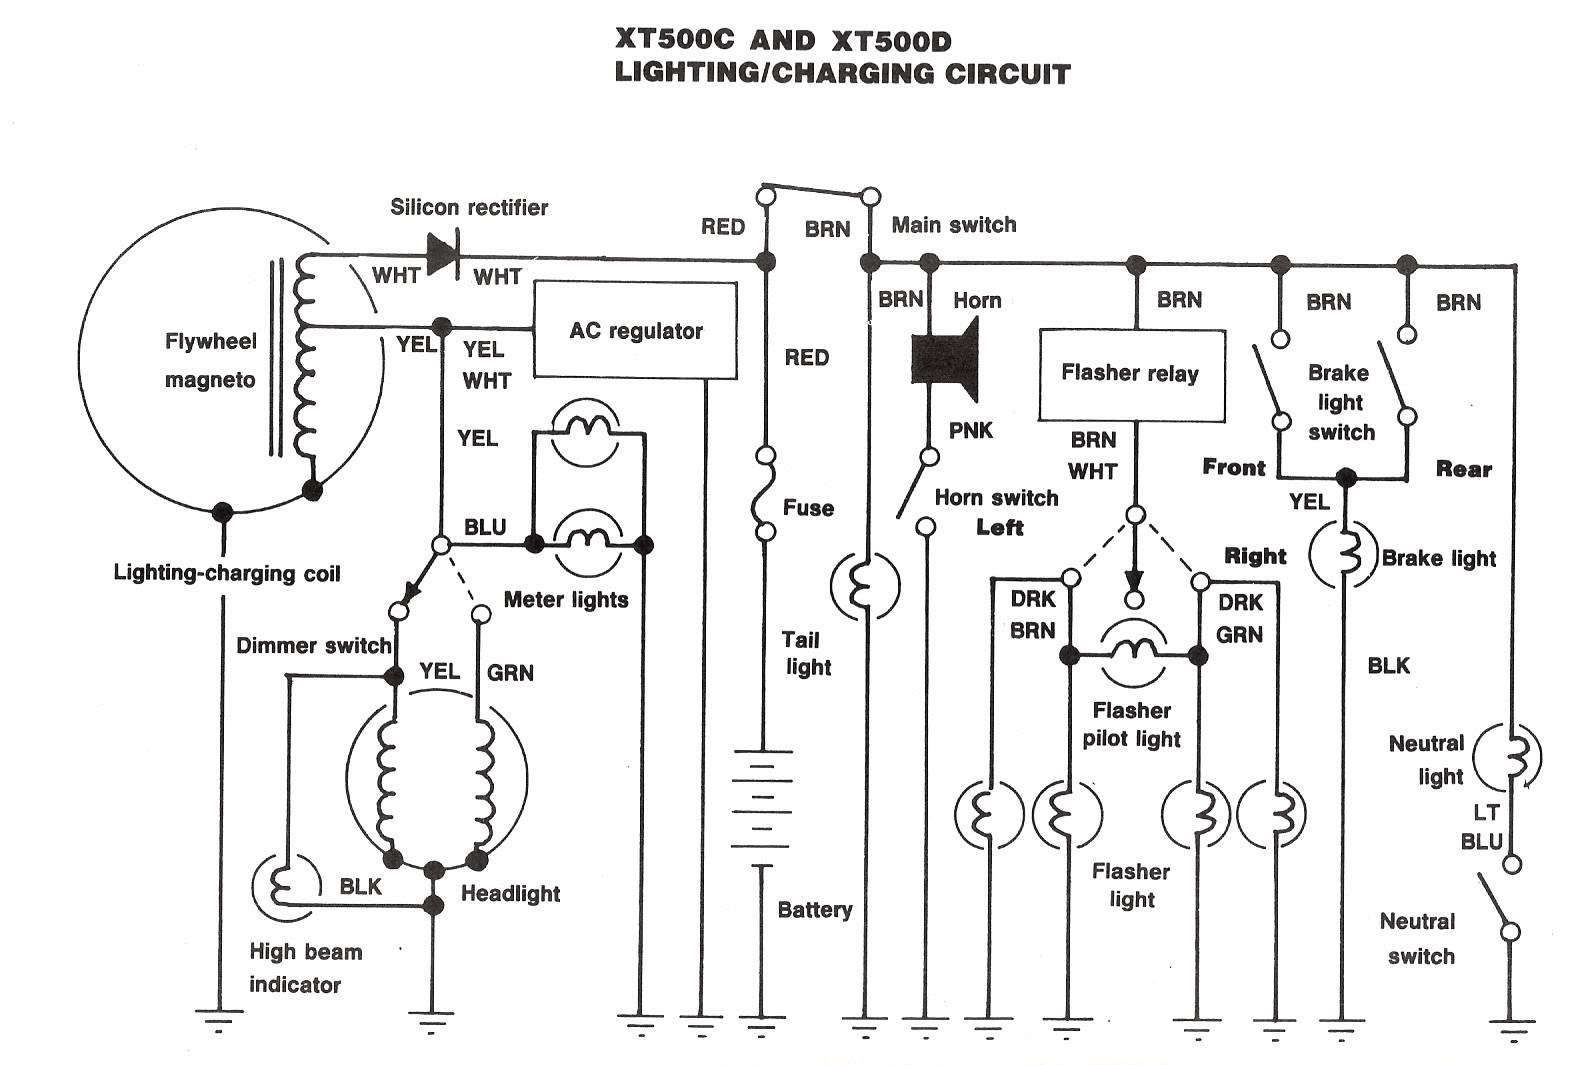 hight resolution of 1976 yamaha xt500 wiring diagram wiring diagram forward 1976 yamaha 500 xt wiring diagram